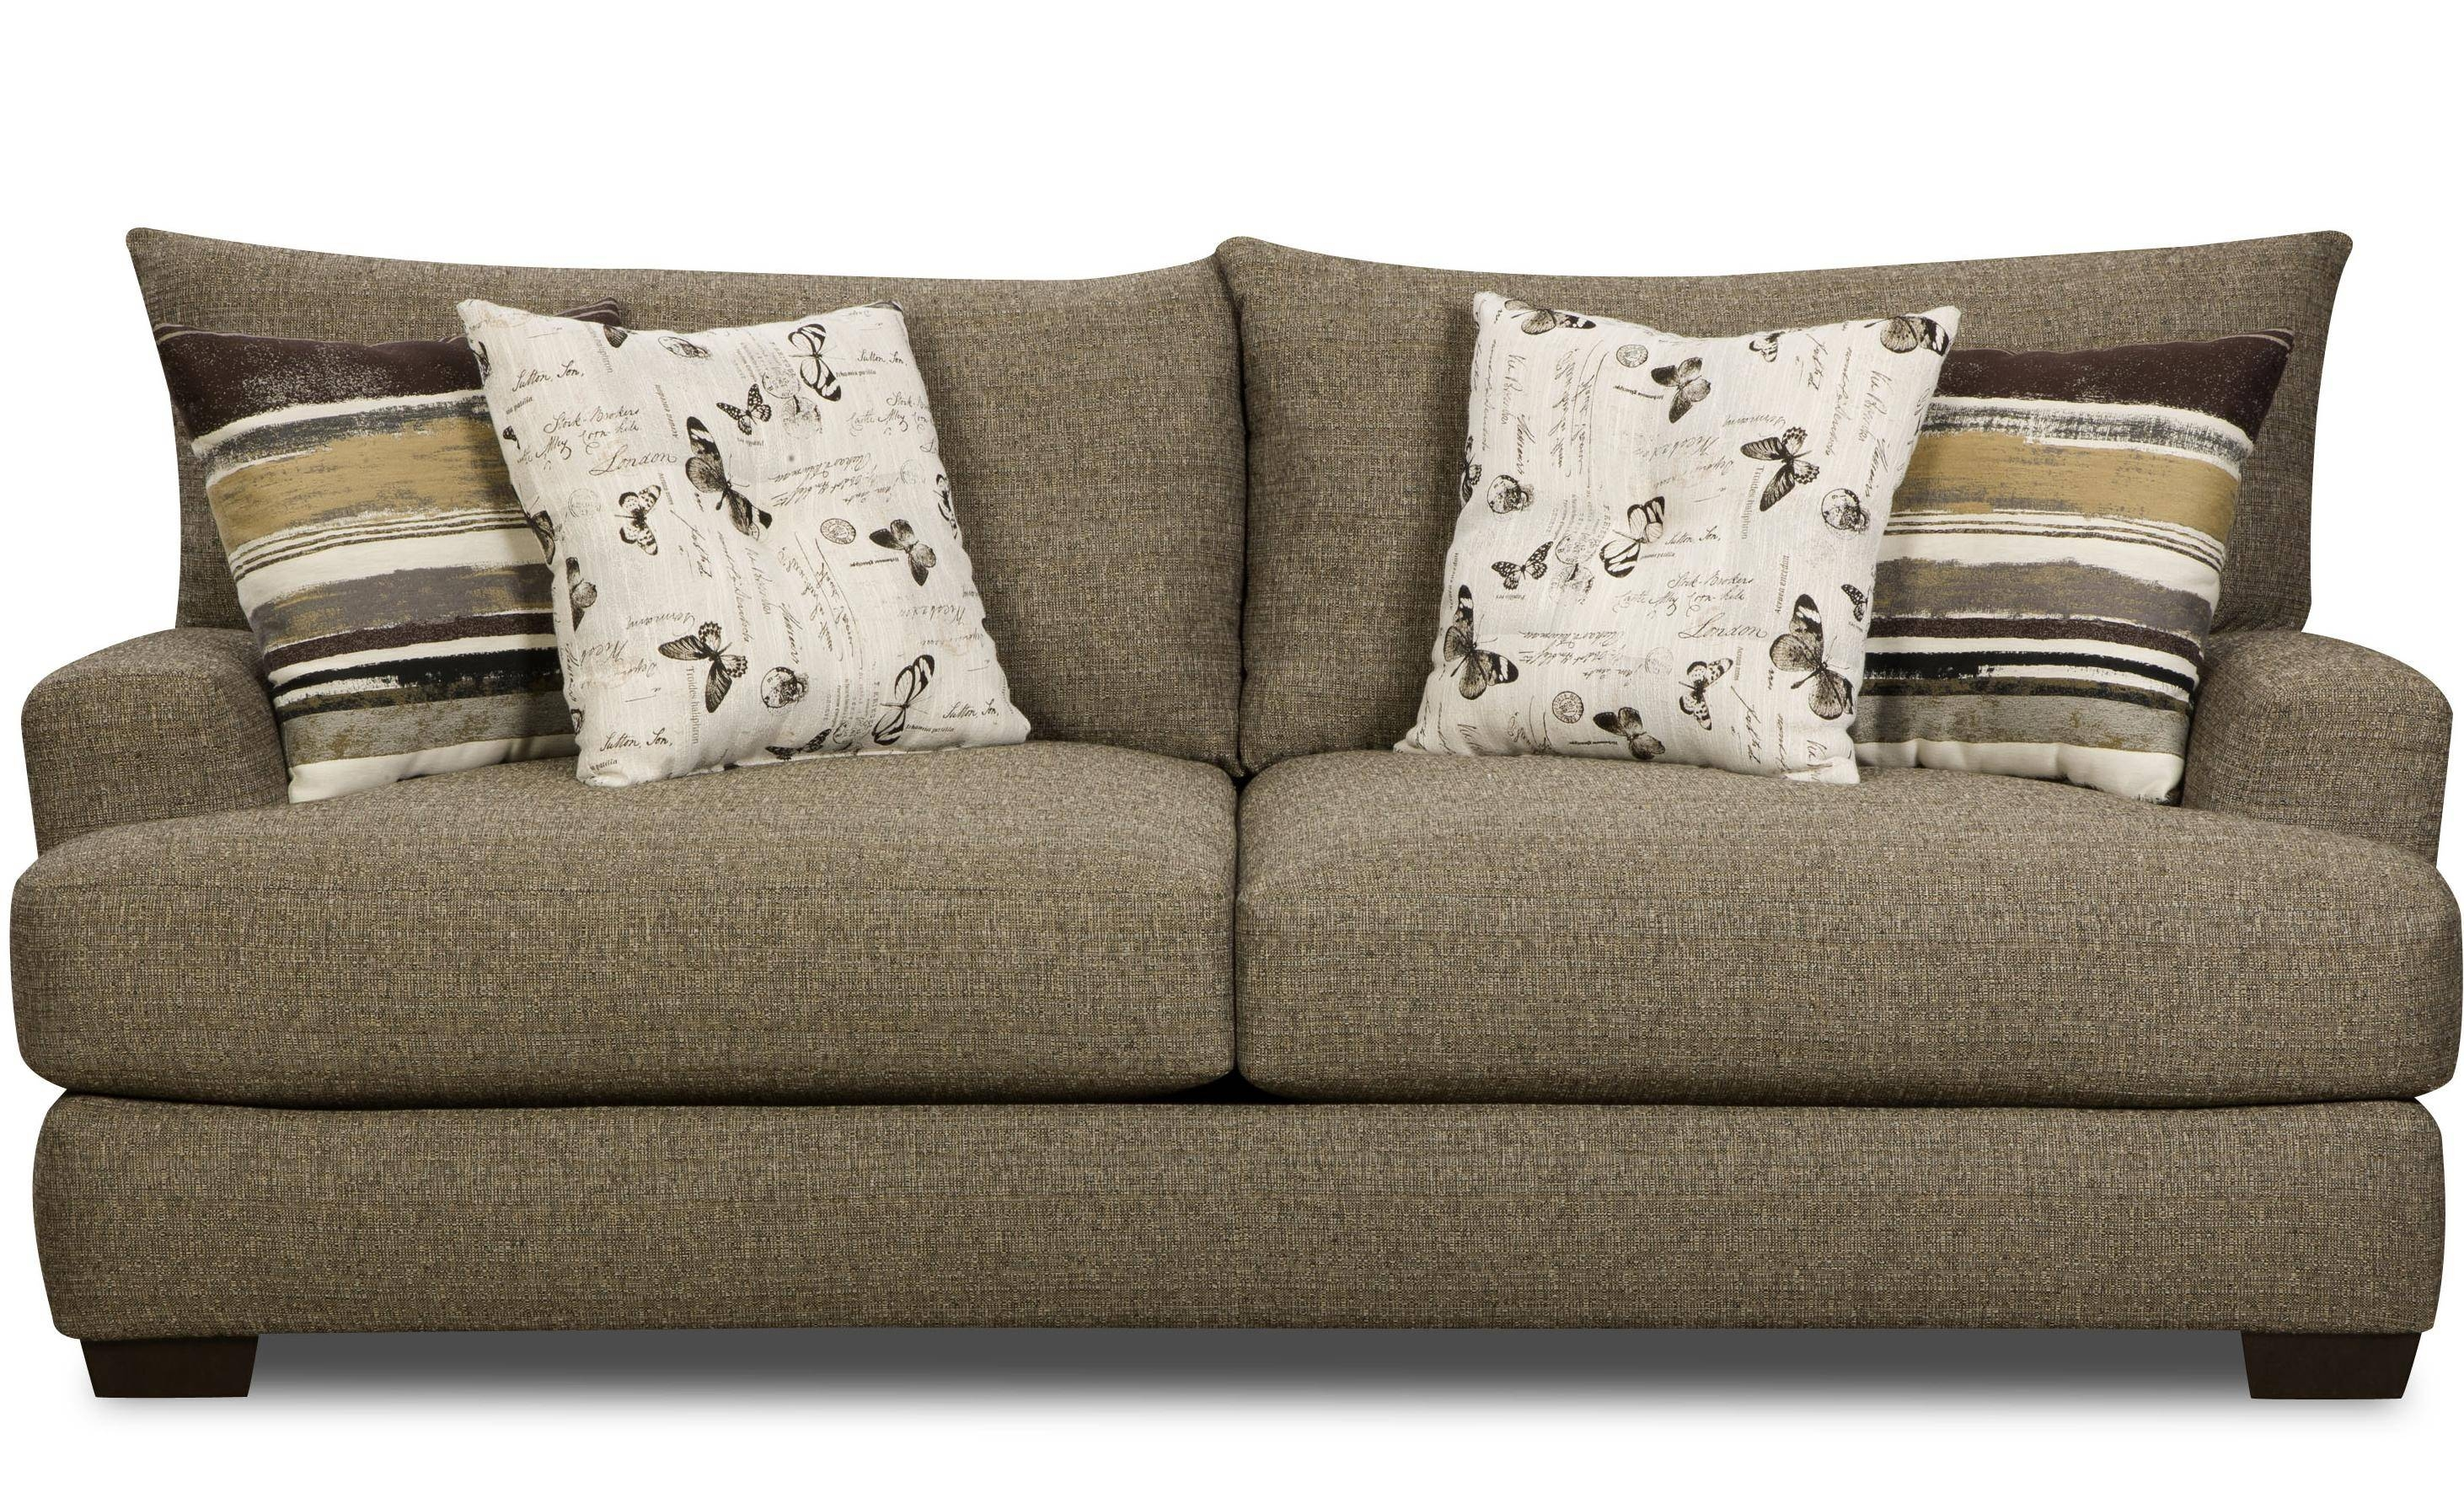 30 Collection of Sofa Cushions